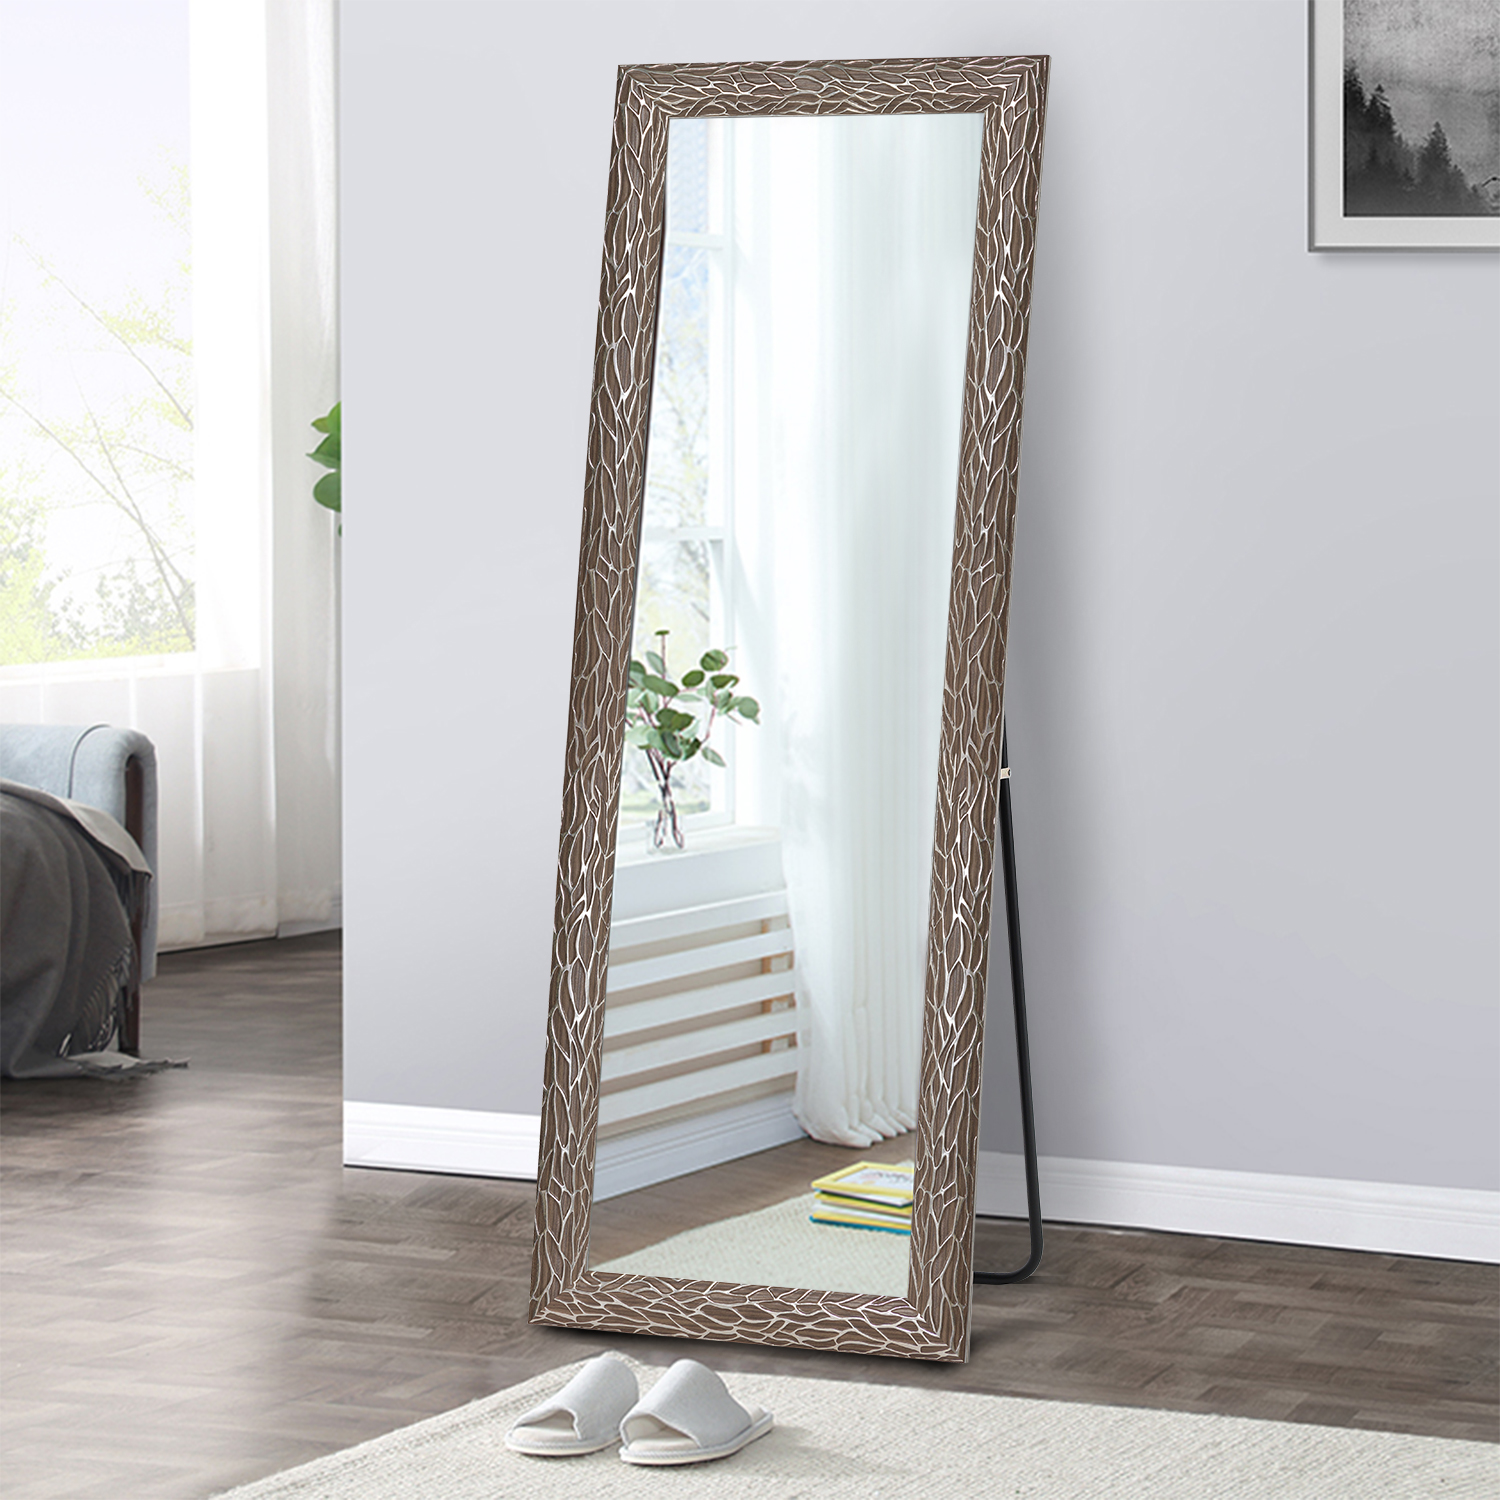 Full Length Mirror Floor Mirror With Standing Holder Wall Mounted Mirror Hanging Horizontally Vertically For Bedroom Living Room Entry Brown White Pattern 65 X 22 Walmart Com Walmart Com